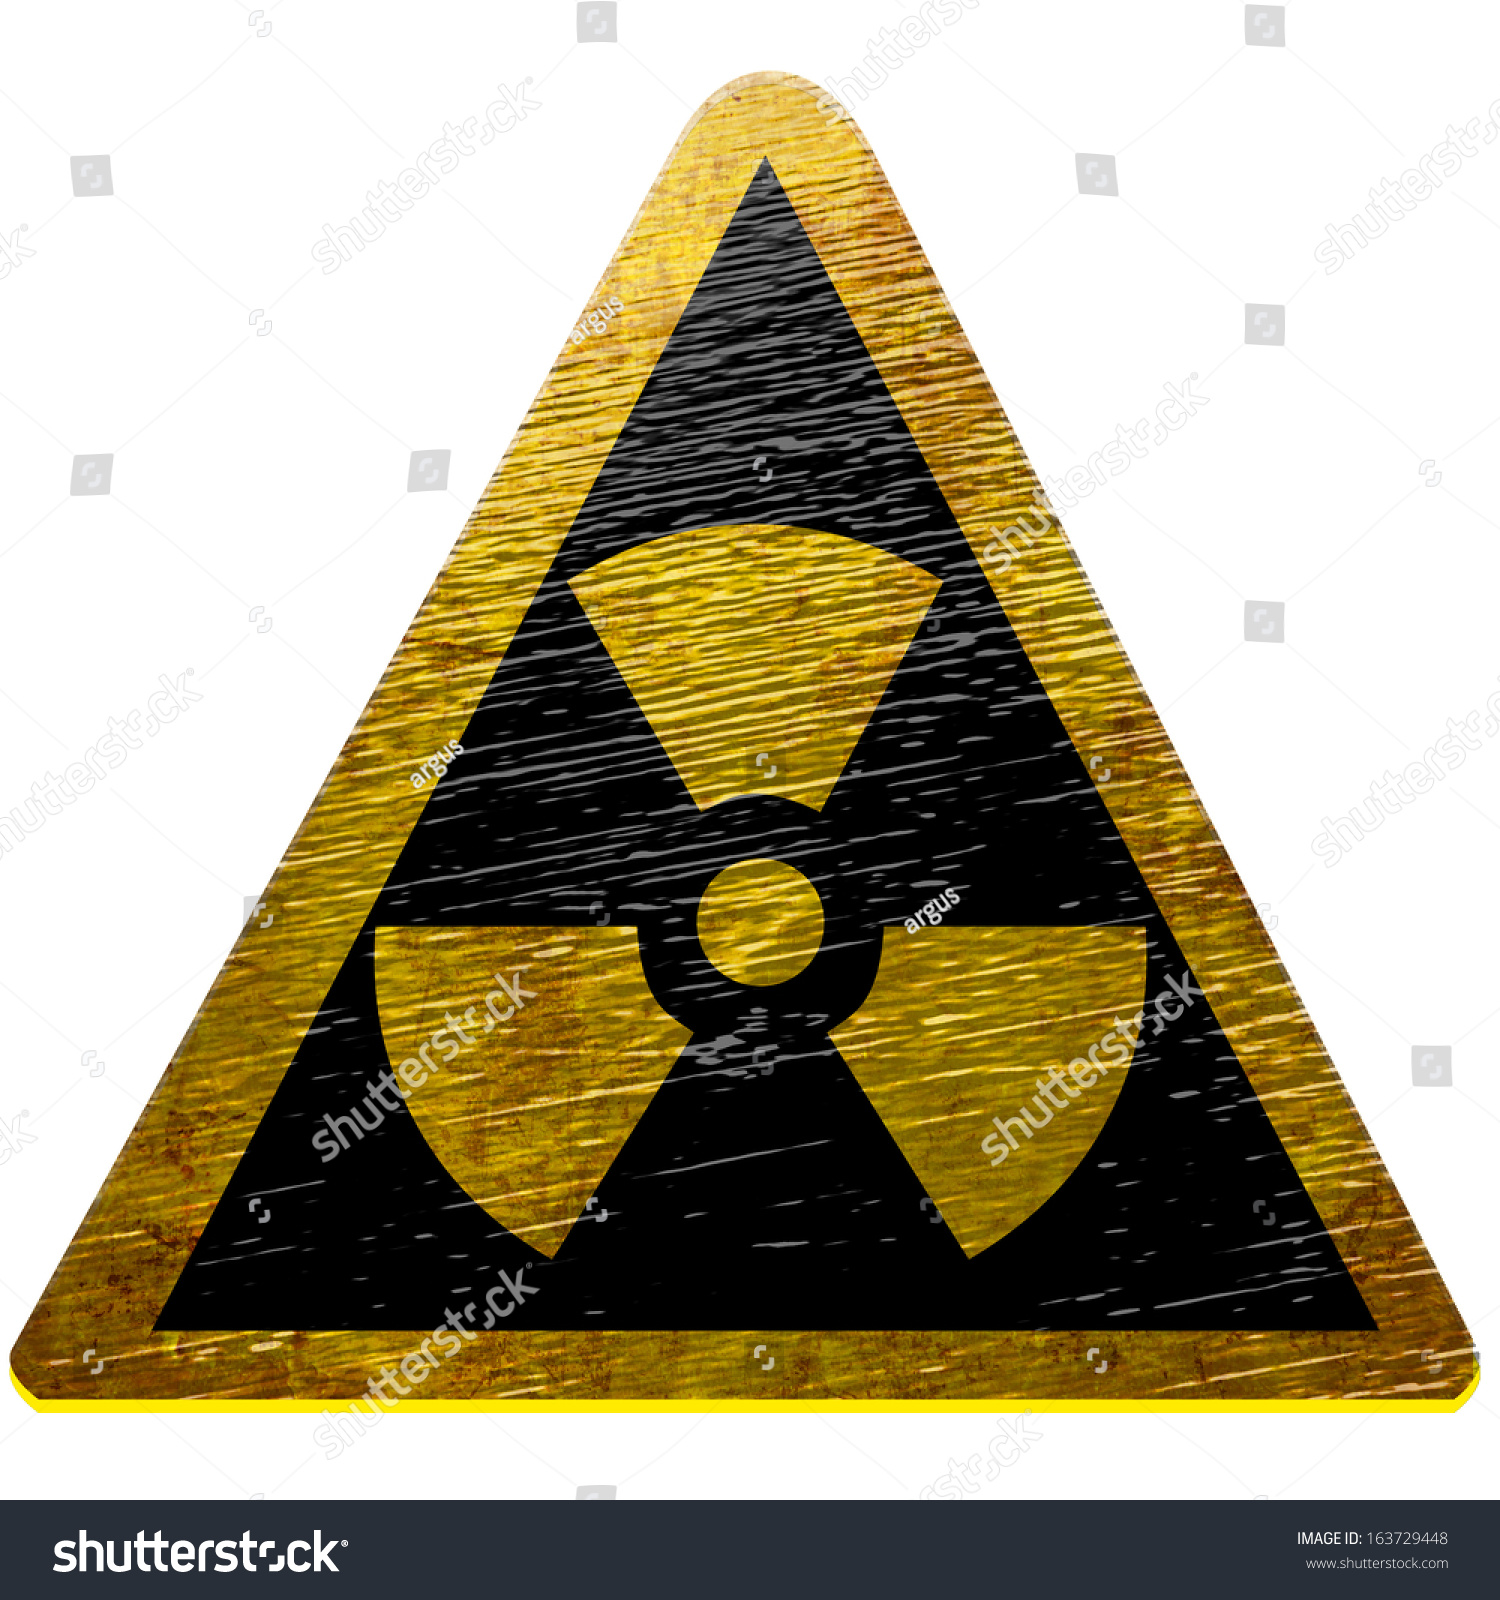 Black yellow nuclear sign isolated on stock illustration 163729448 black yellow nuclear sign isolated on stock illustration 163729448 shutterstock biocorpaavc Gallery